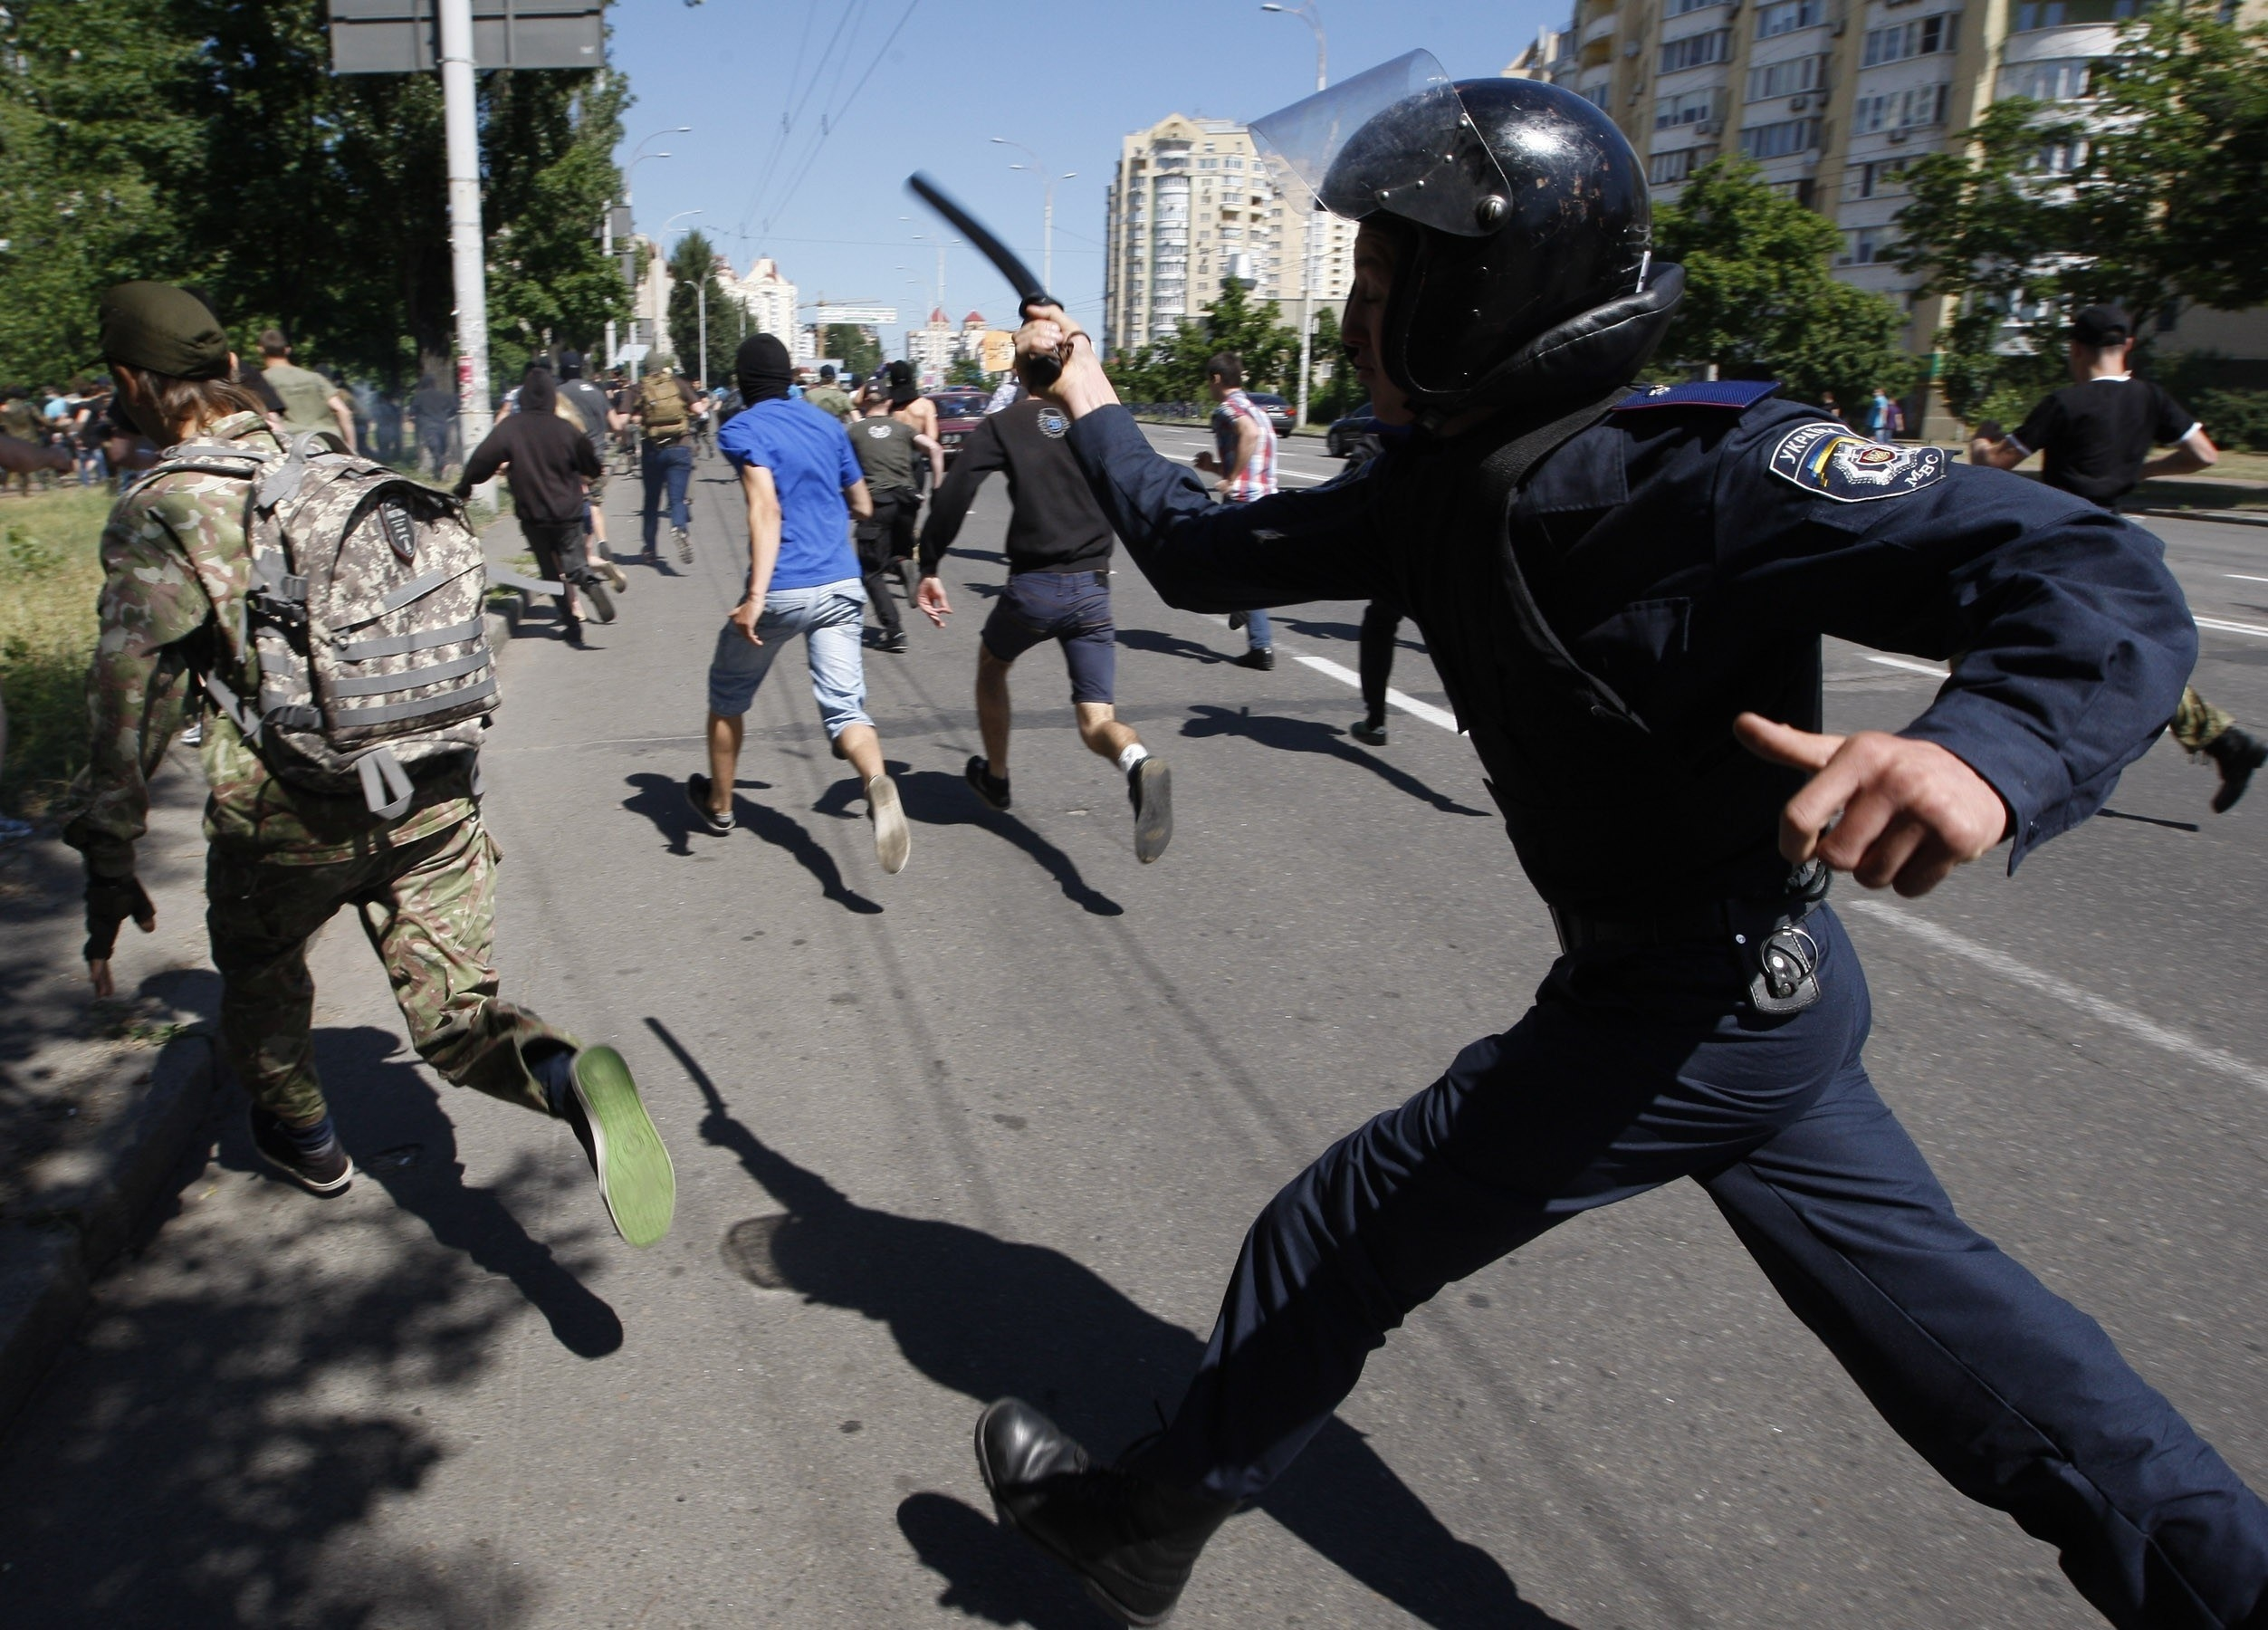 A police officer holding a baton runs after protesters